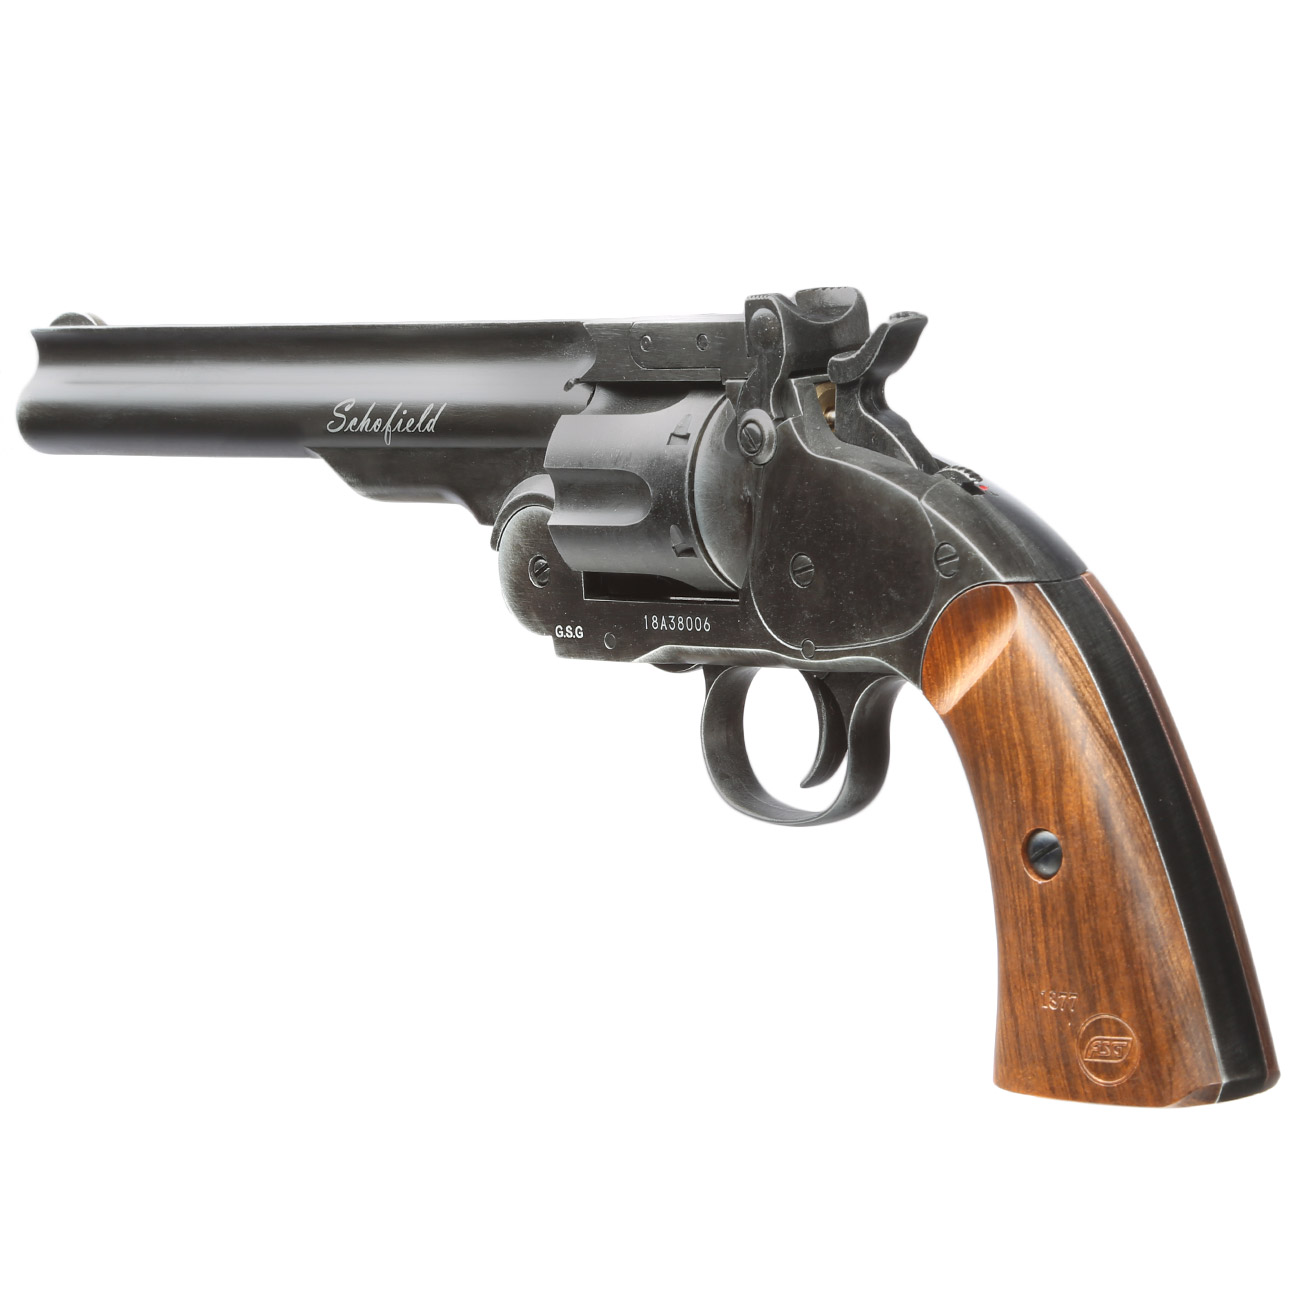 ASG Schofield 1877 6 Zoll CO2-Revolver Kal. 4,5 mm Diabolo + Stahl-BB Vollmetall aging black 2